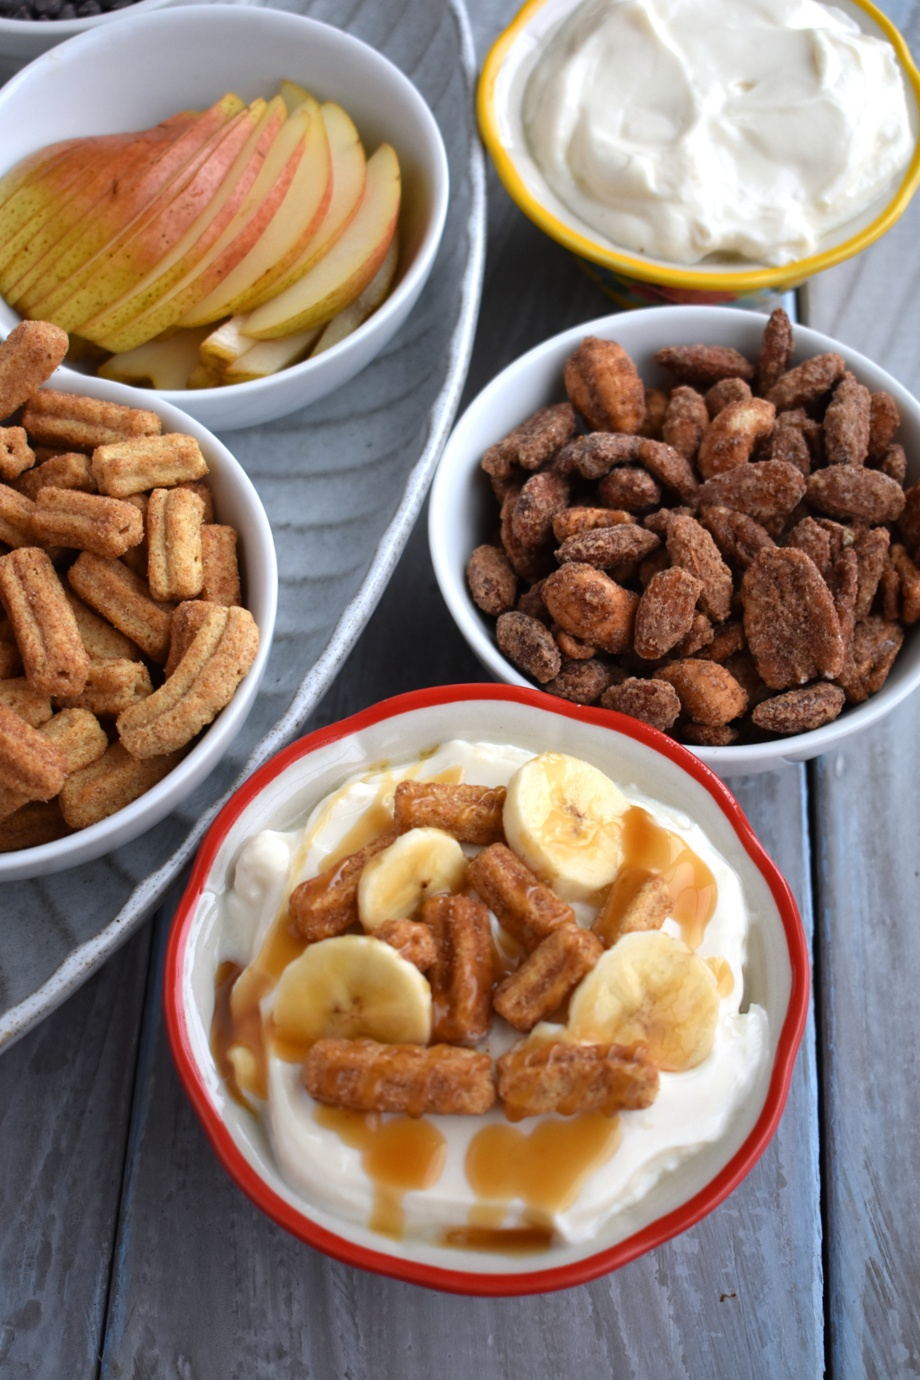 Churros, bananas and caramel yogurt bowl